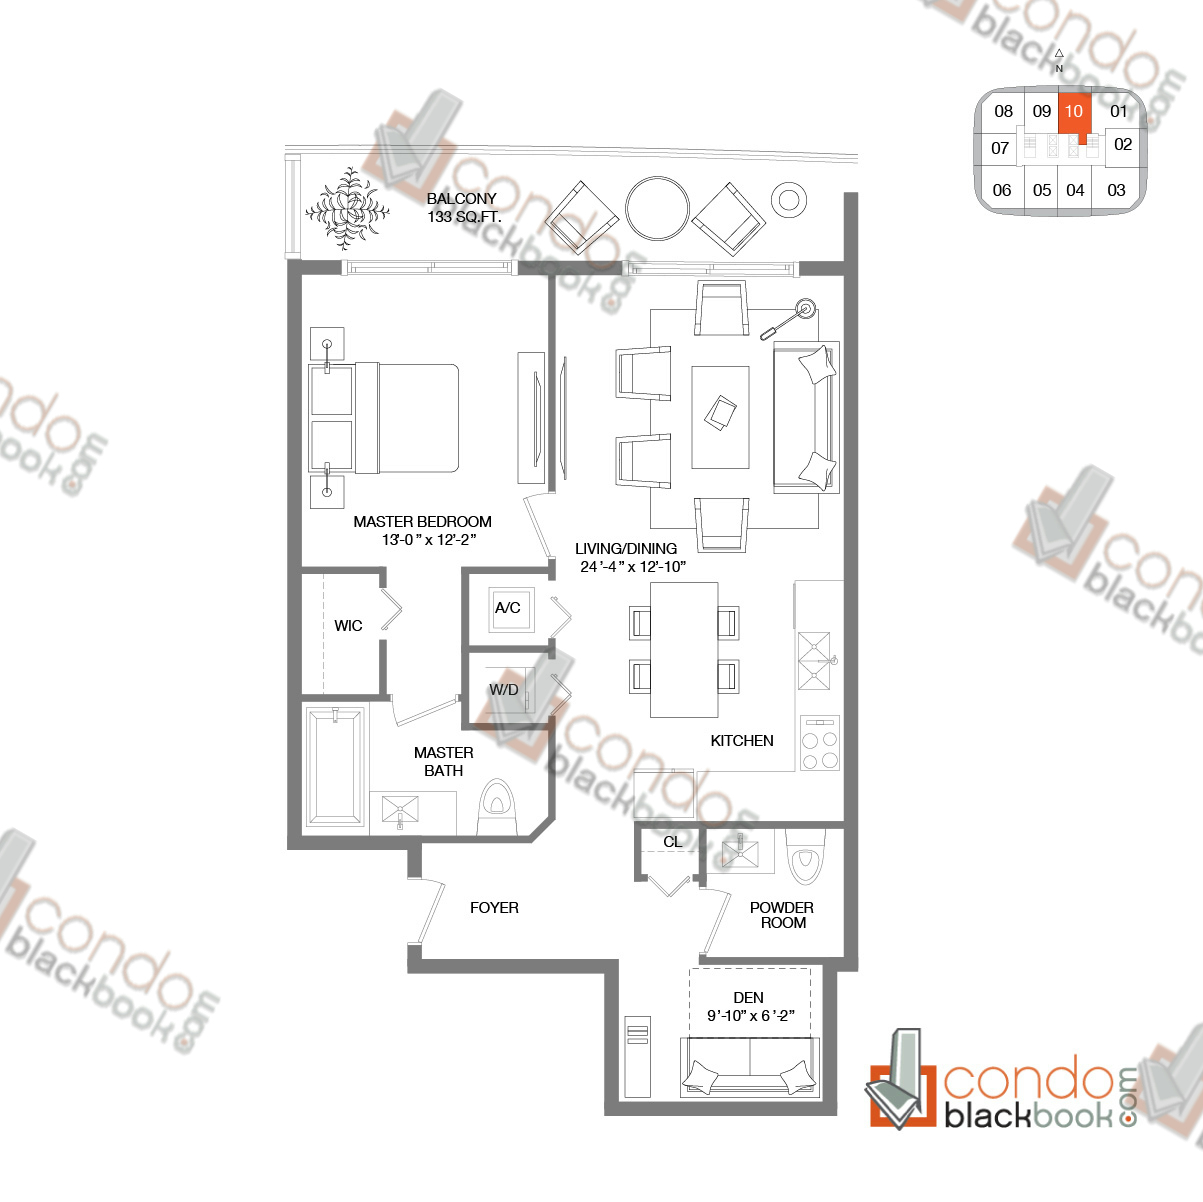 Floor plan for Brickell Heights West Tower Brickell Miami, model RESIDENCE 10, line 10, 1/1+Den bedrooms, 904 sq ft